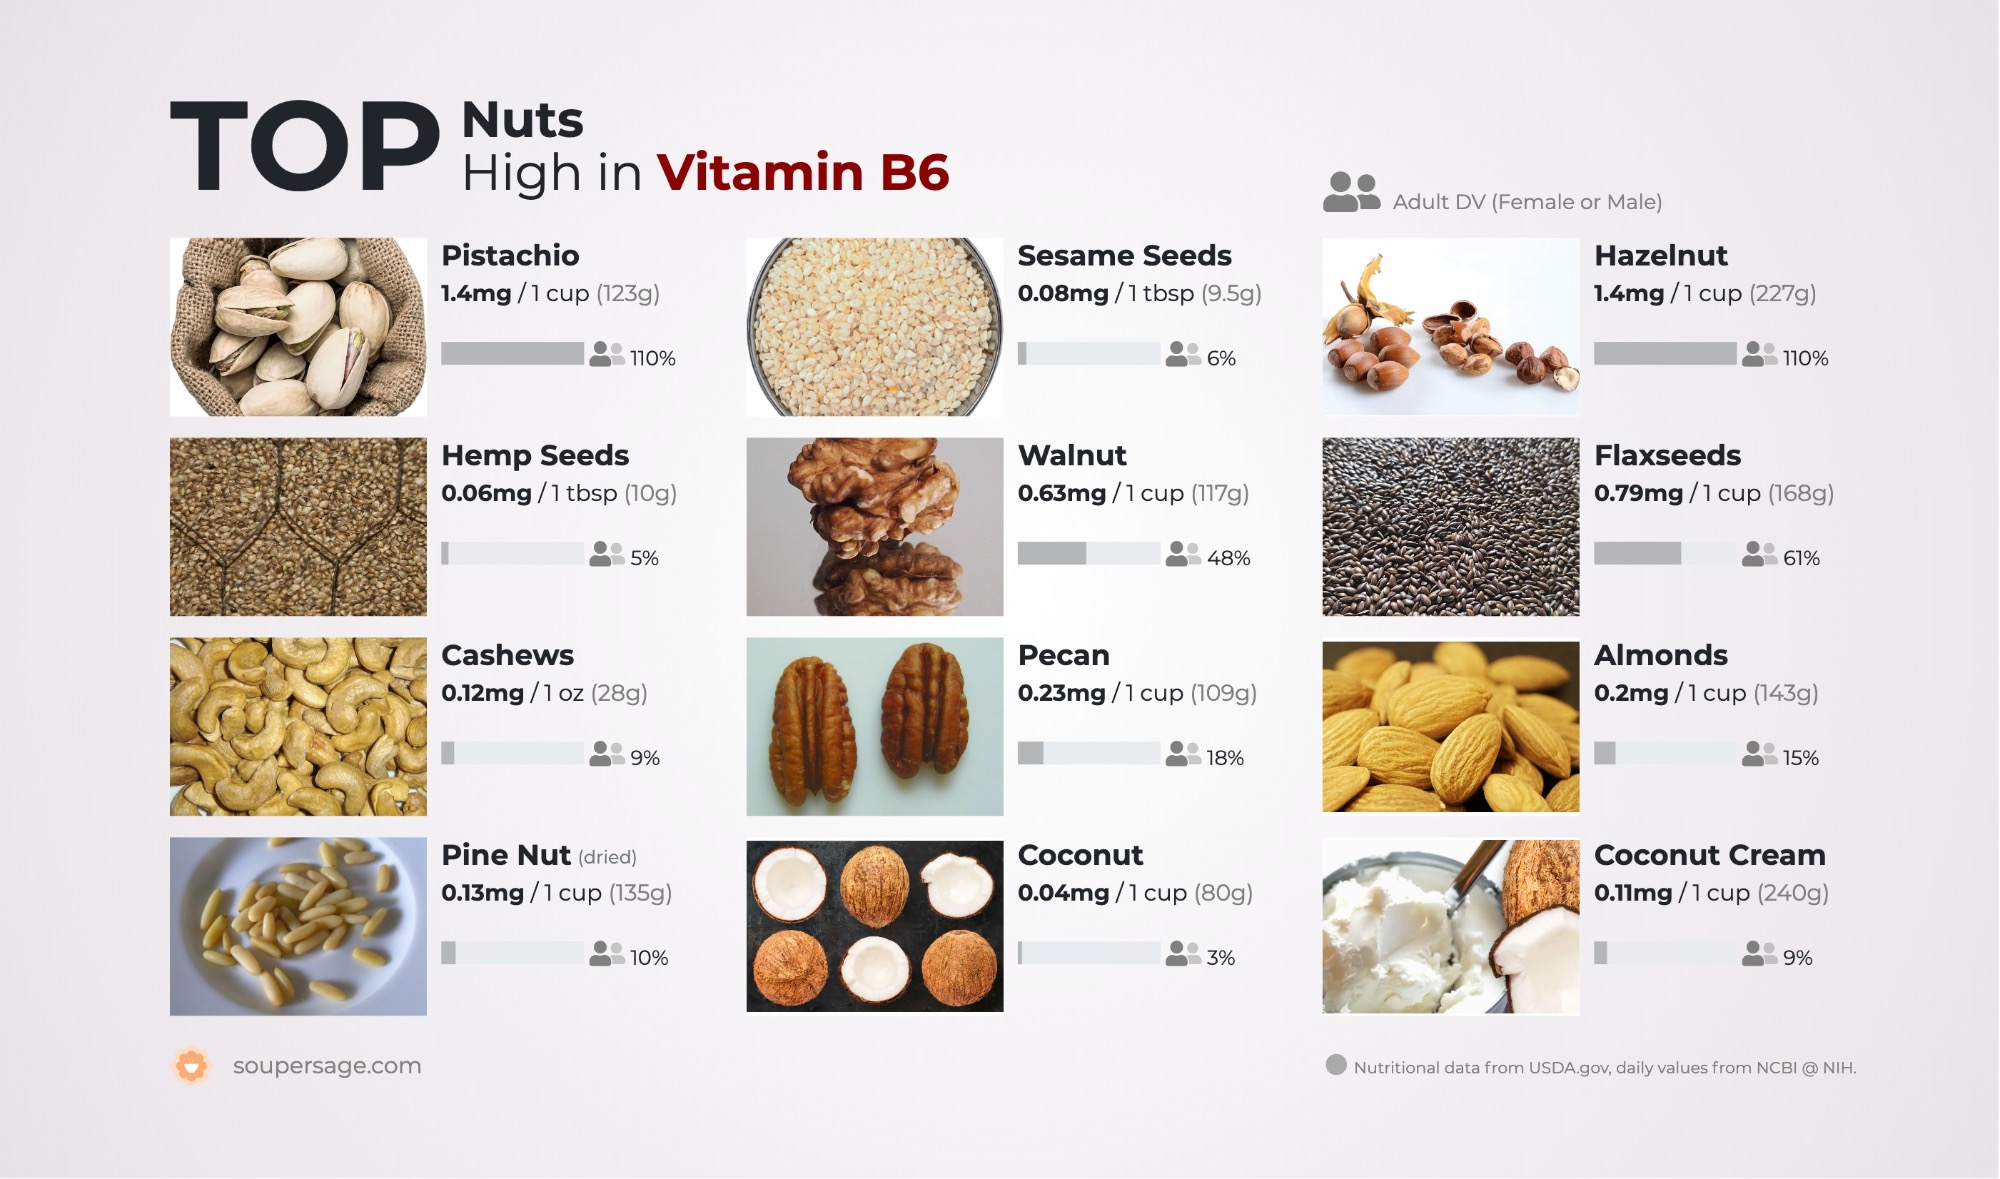 image of Top Nuts High in Vitamin B6